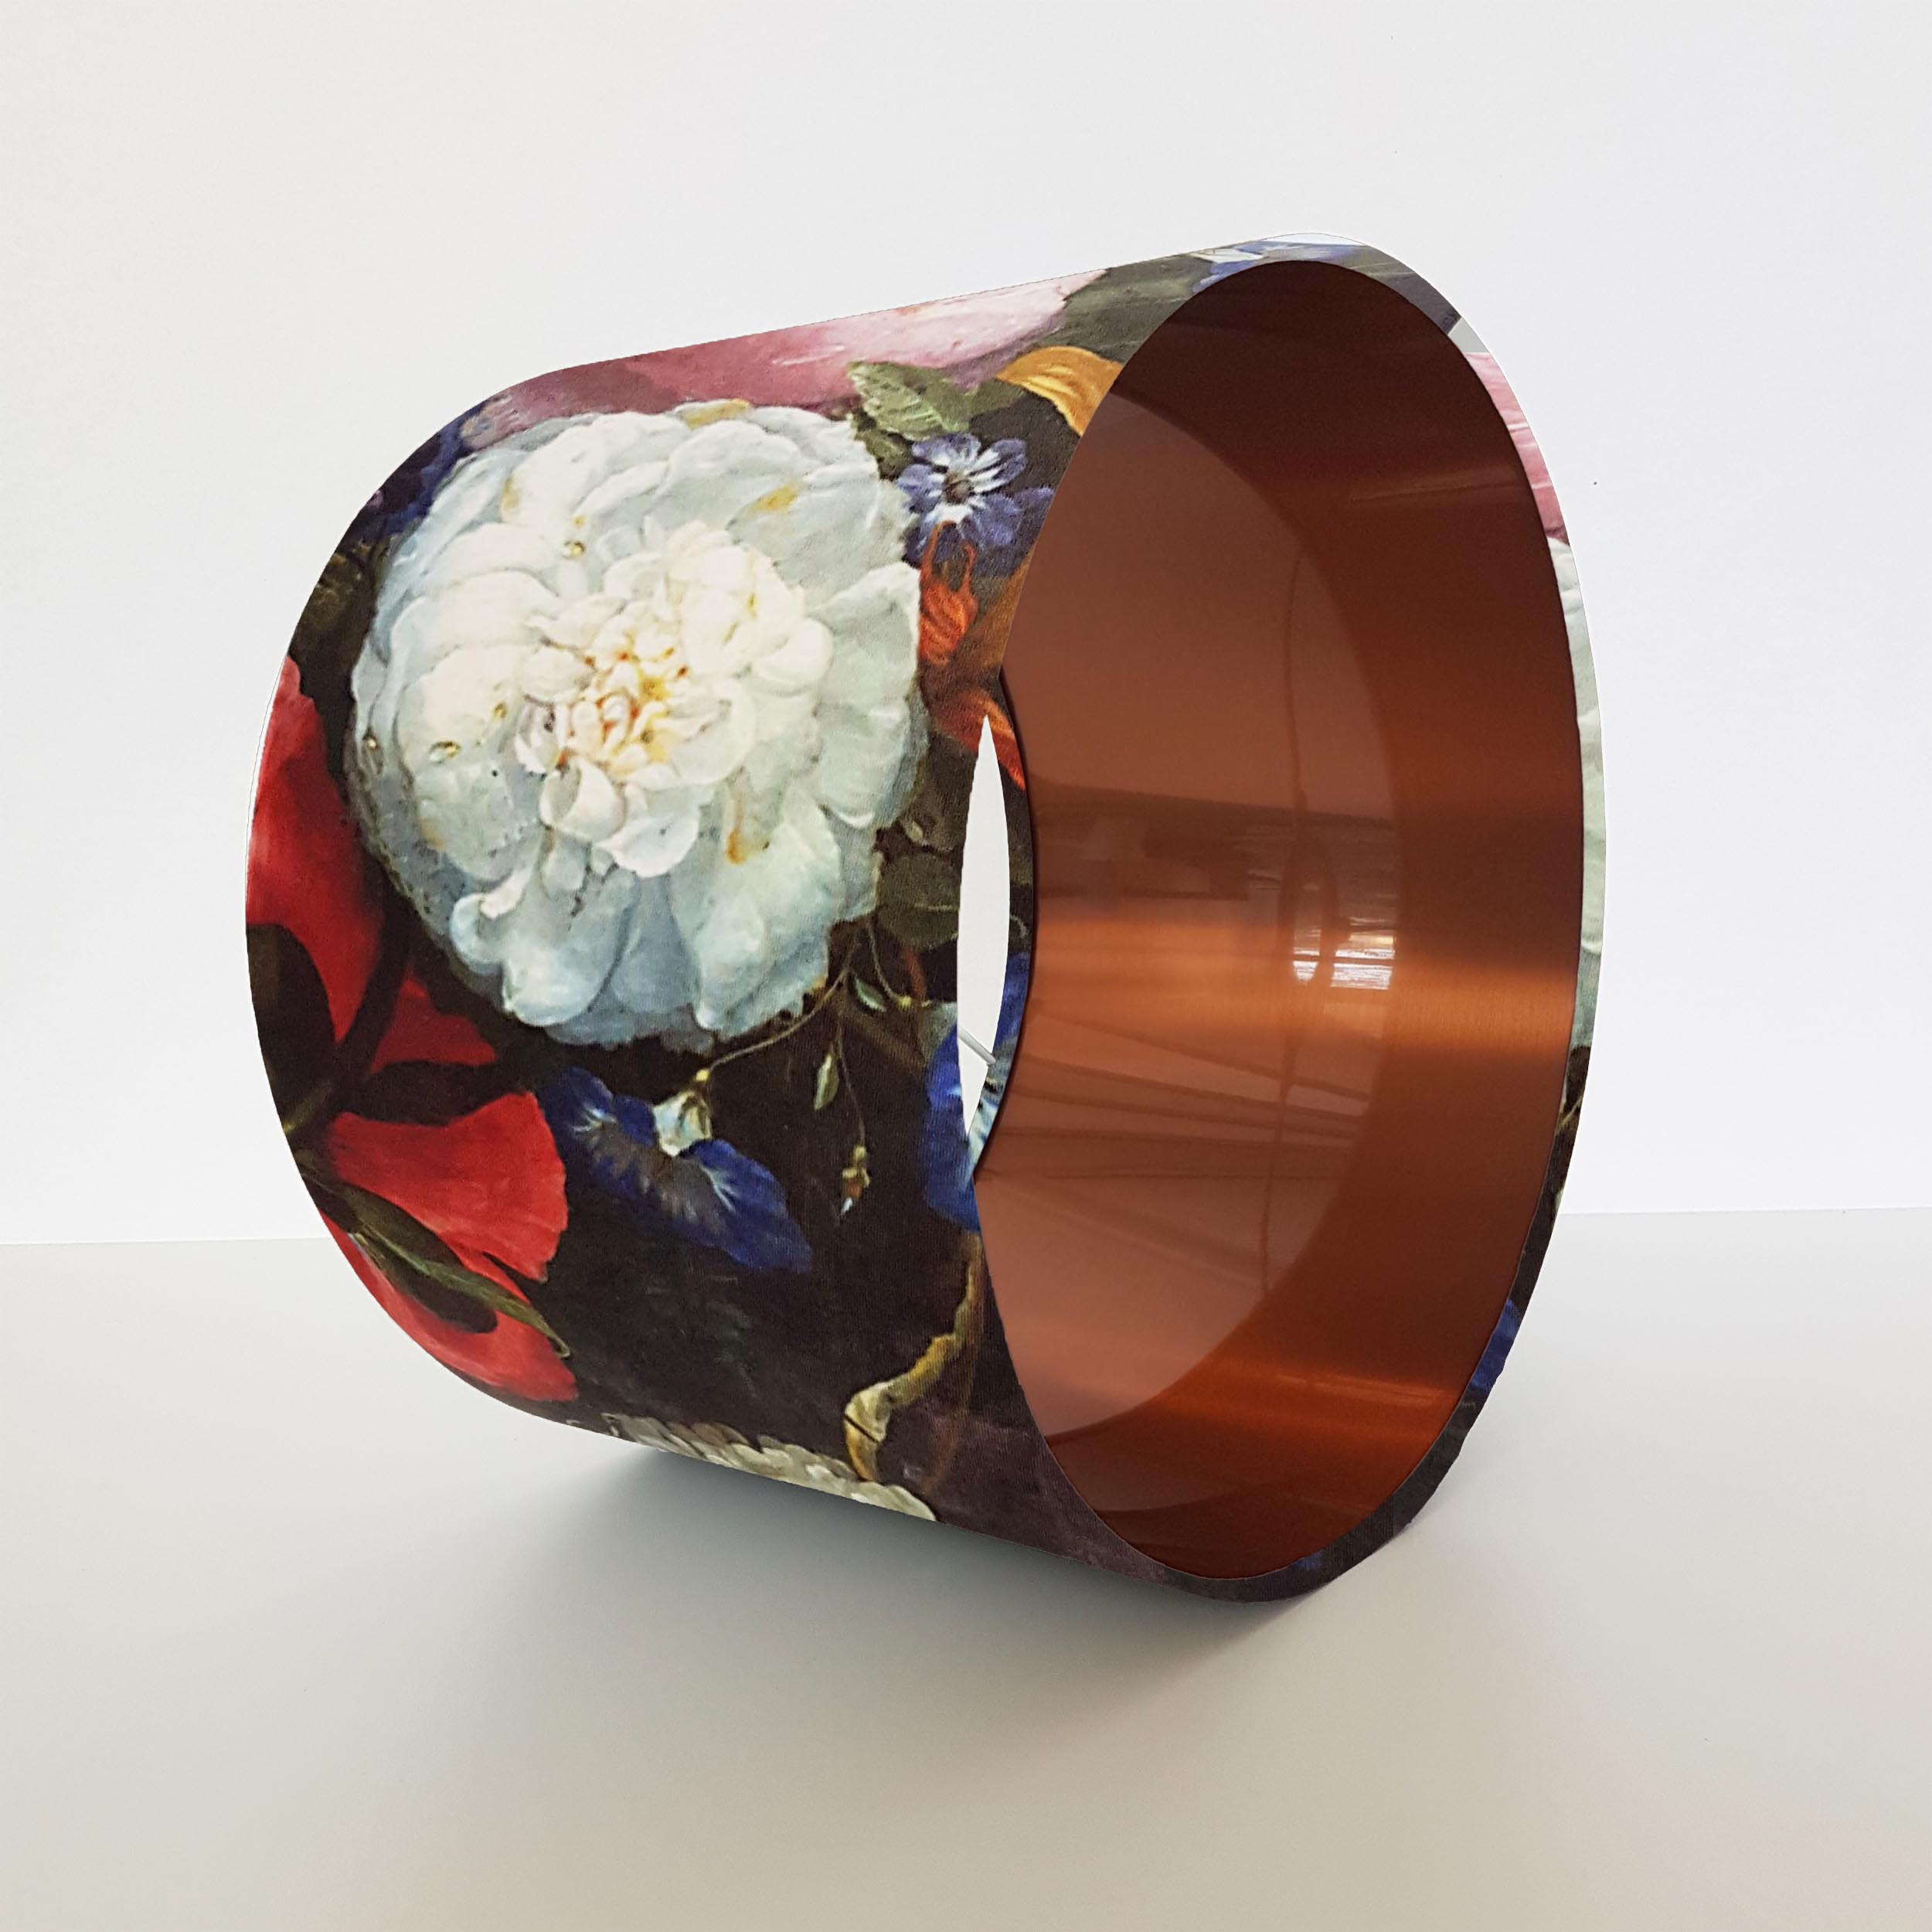 Floral Velvet Lampshade with Brushed Copper Lining